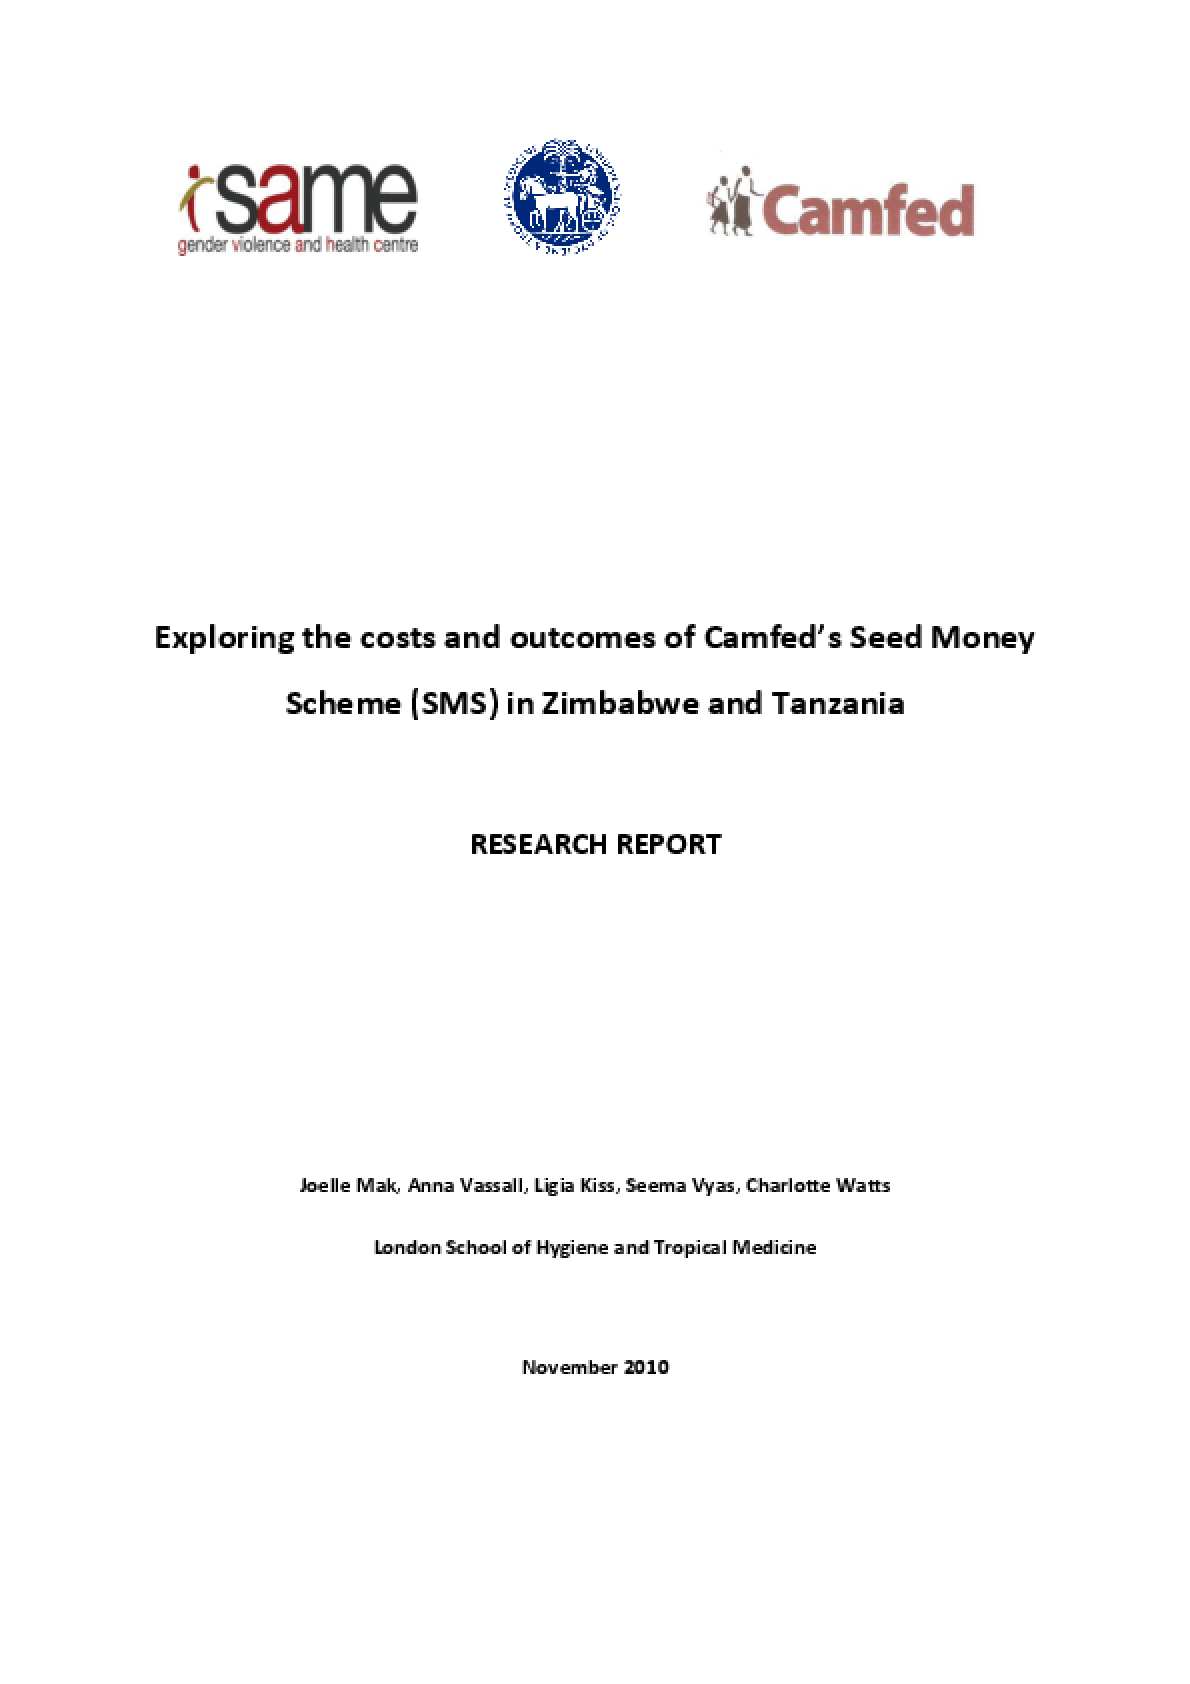 Exploring the Costs and Outcomes of Camfed's Seed Money Scheme (SMS) in Zimbabwe and Tanzania